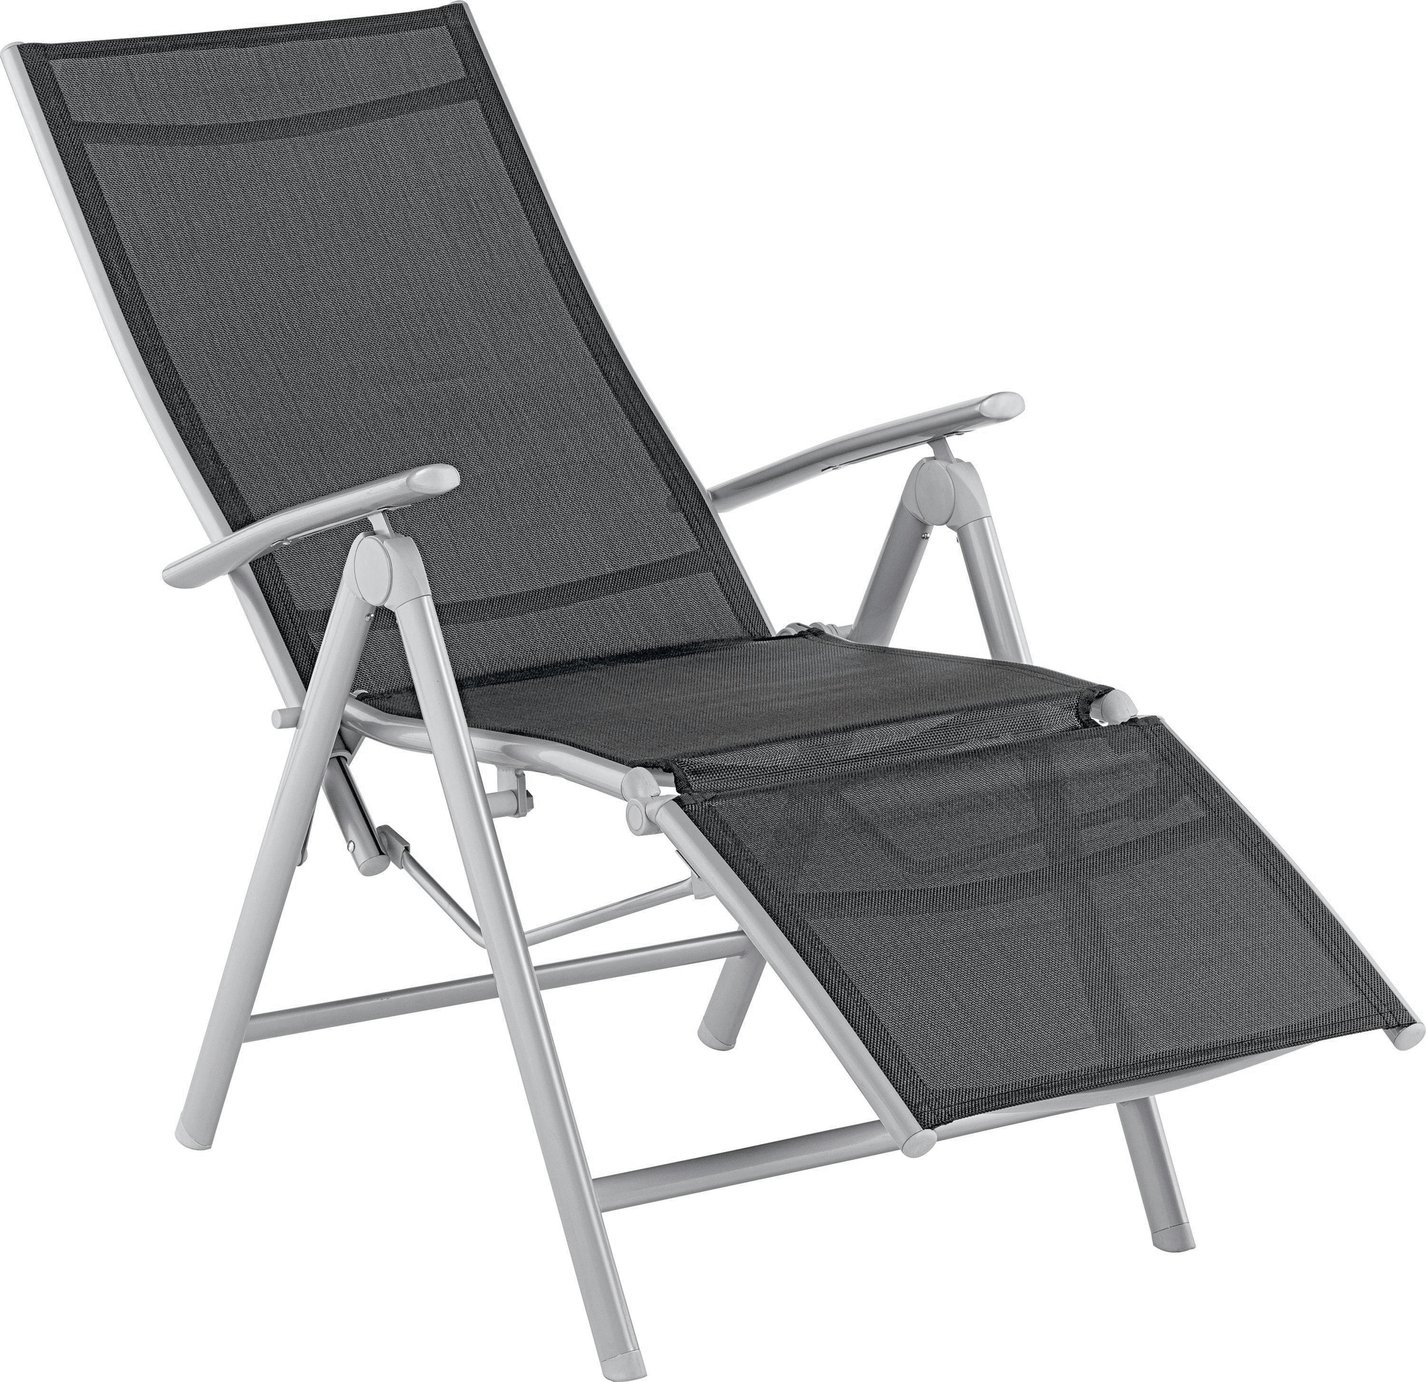 Garden furniture reclining chairs roselawnlutheran for Chair chair chair